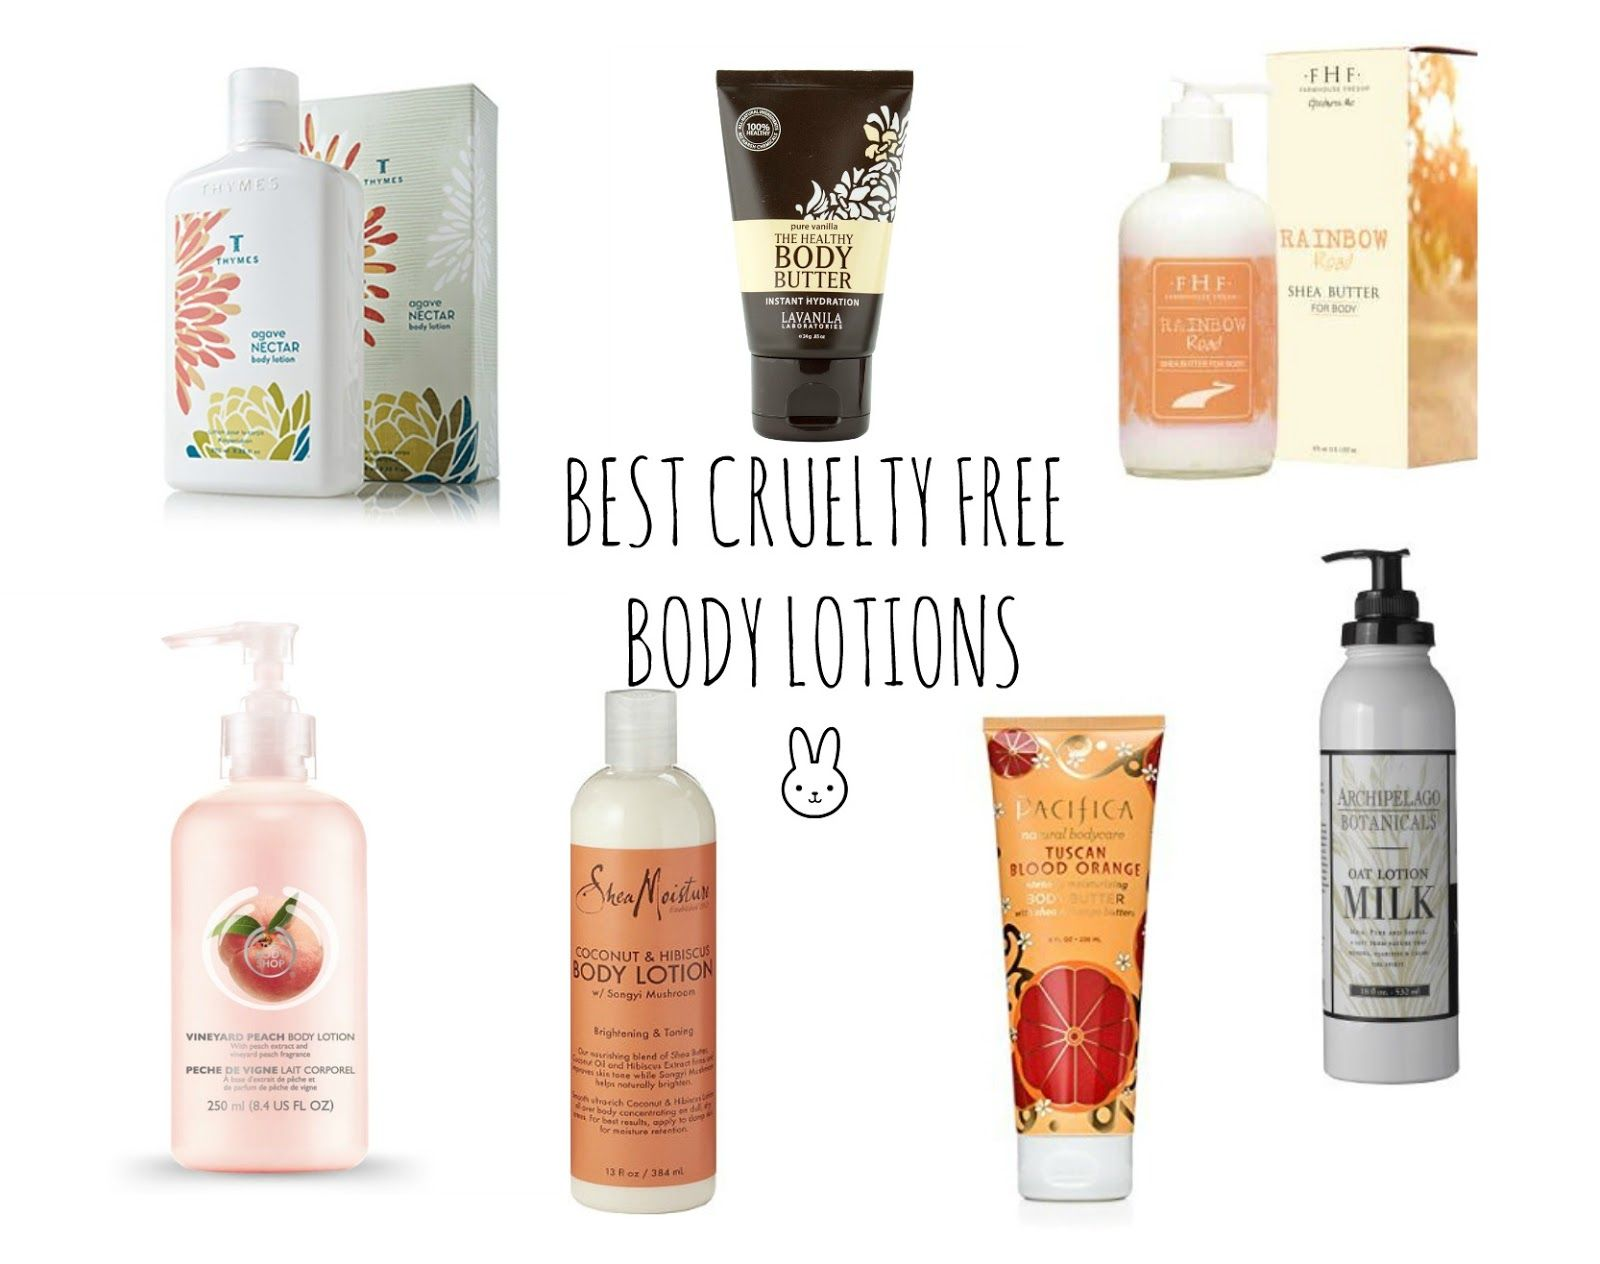 Best Cruelty Free Body Lotions Body Lotions Cruelty Free Makeup Lotion